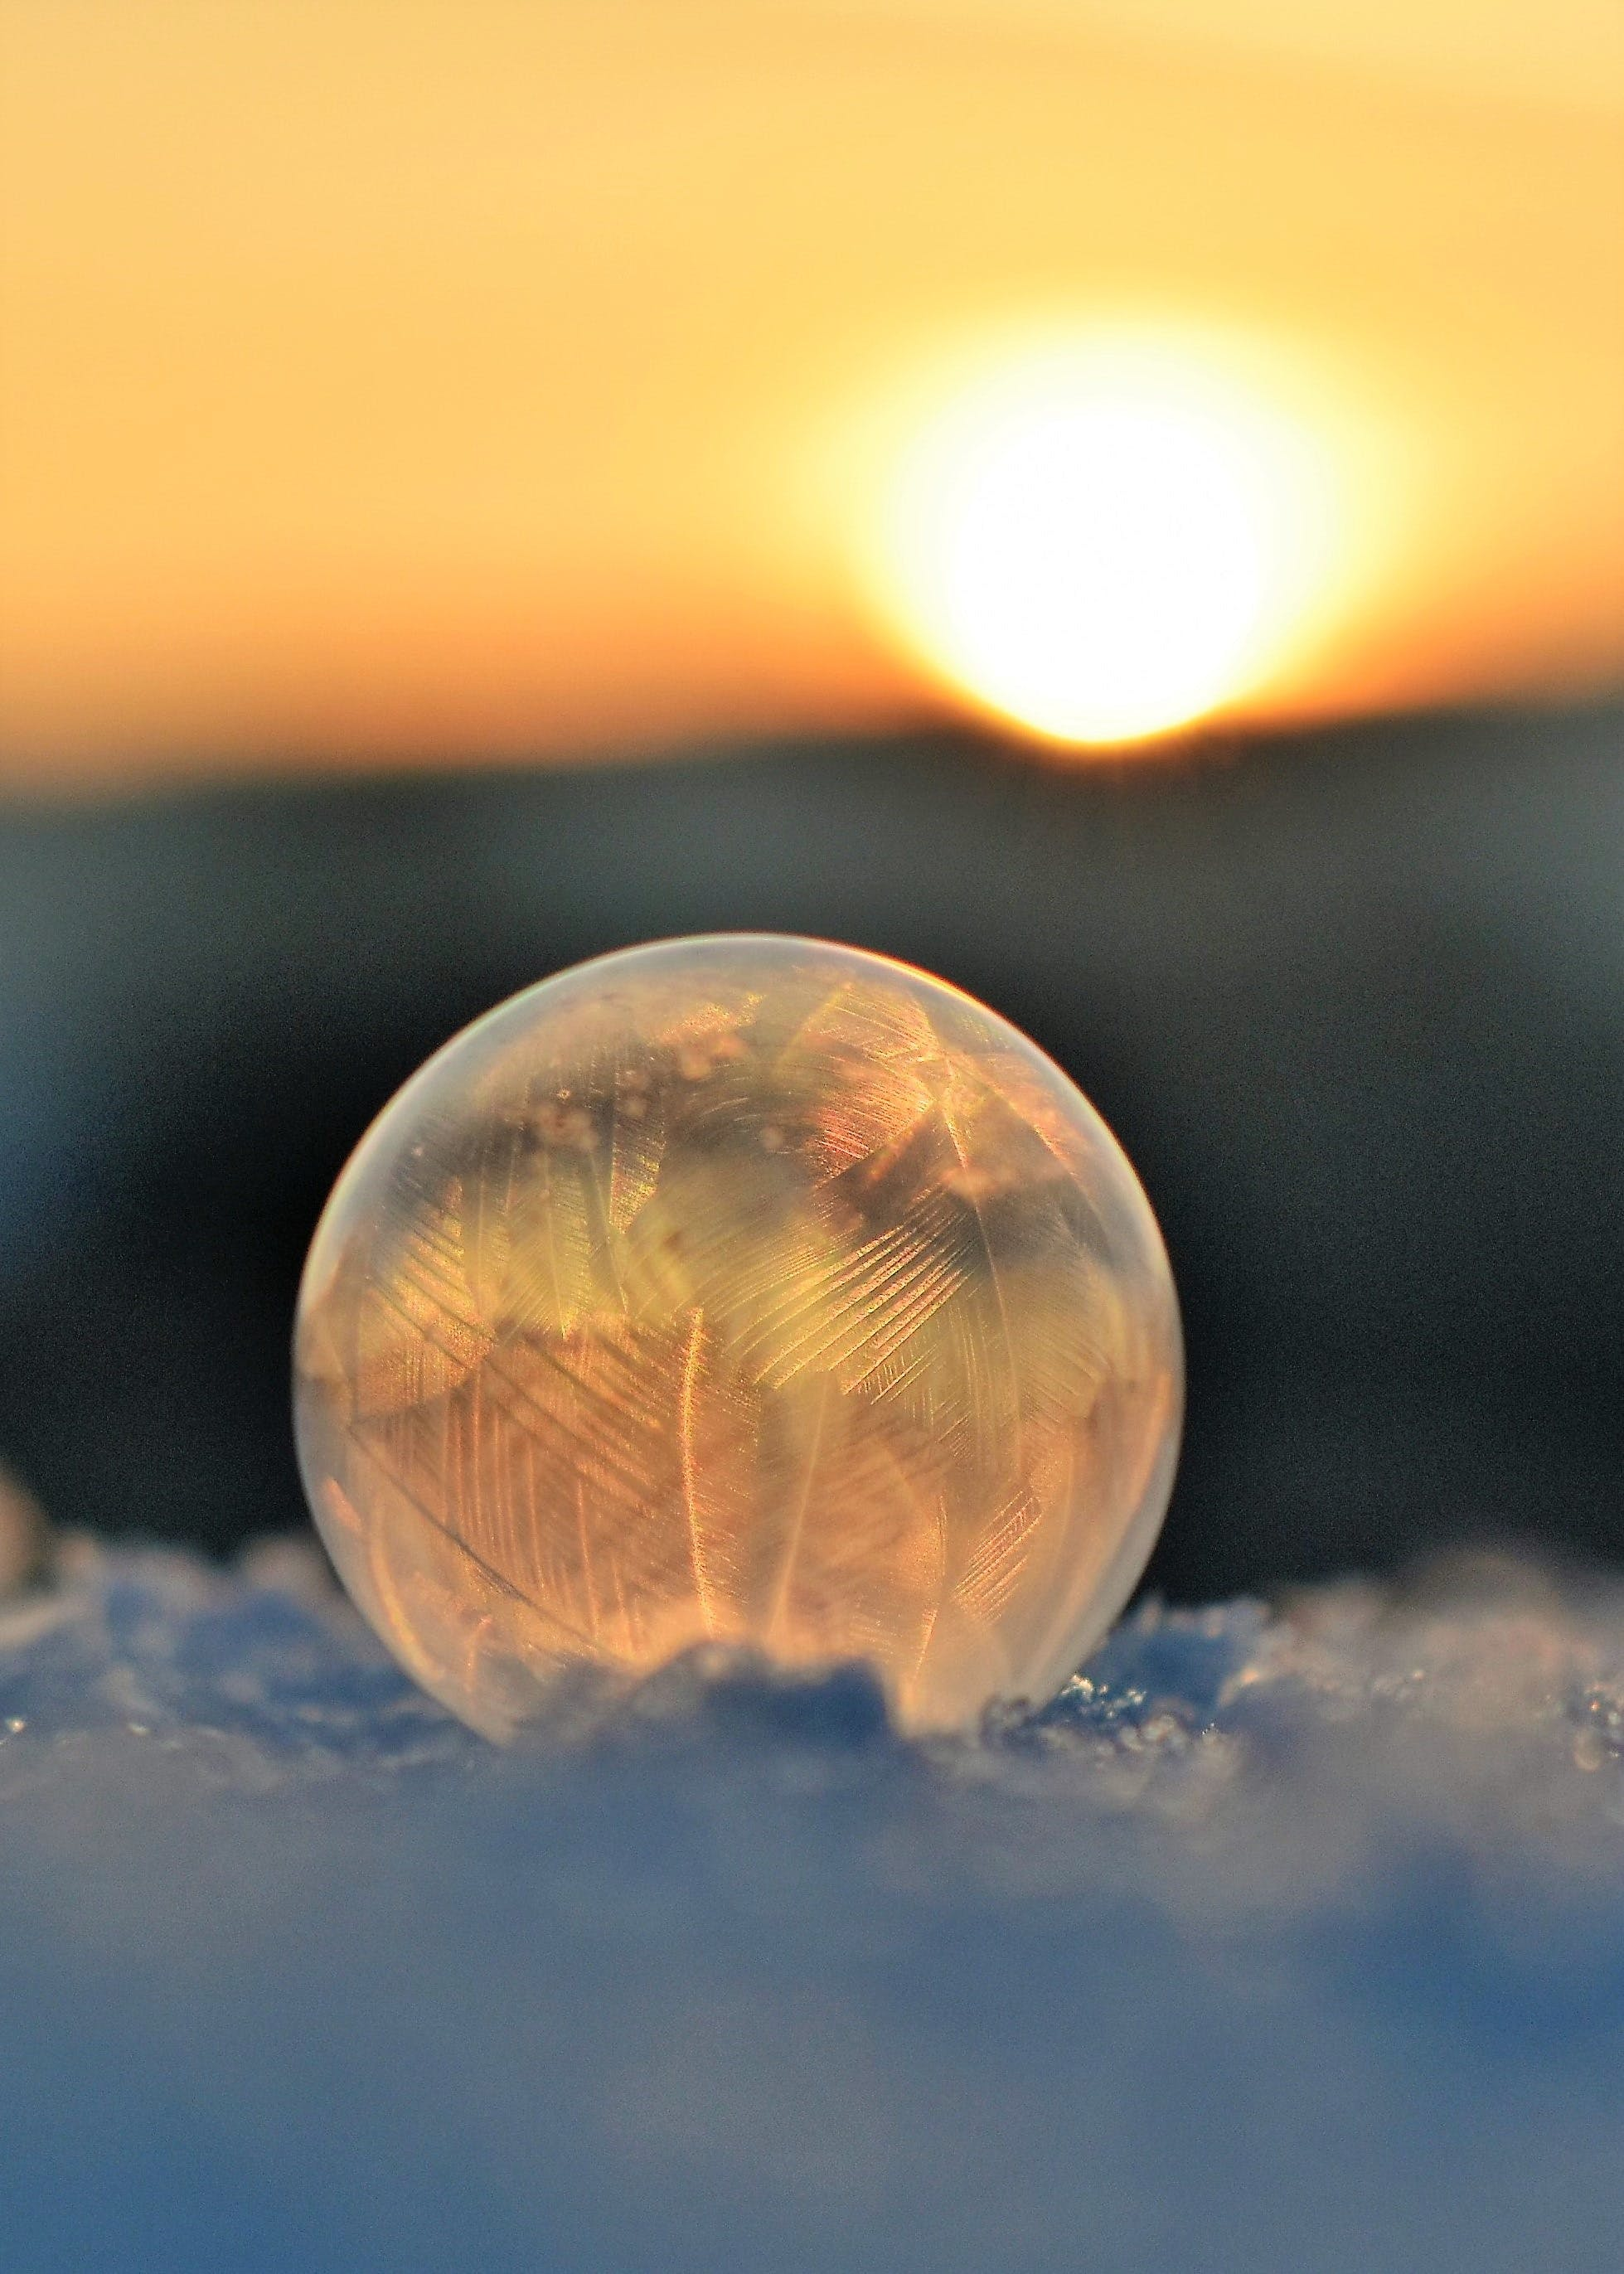 Frozen Soap Bubble Against Sky during Sunset